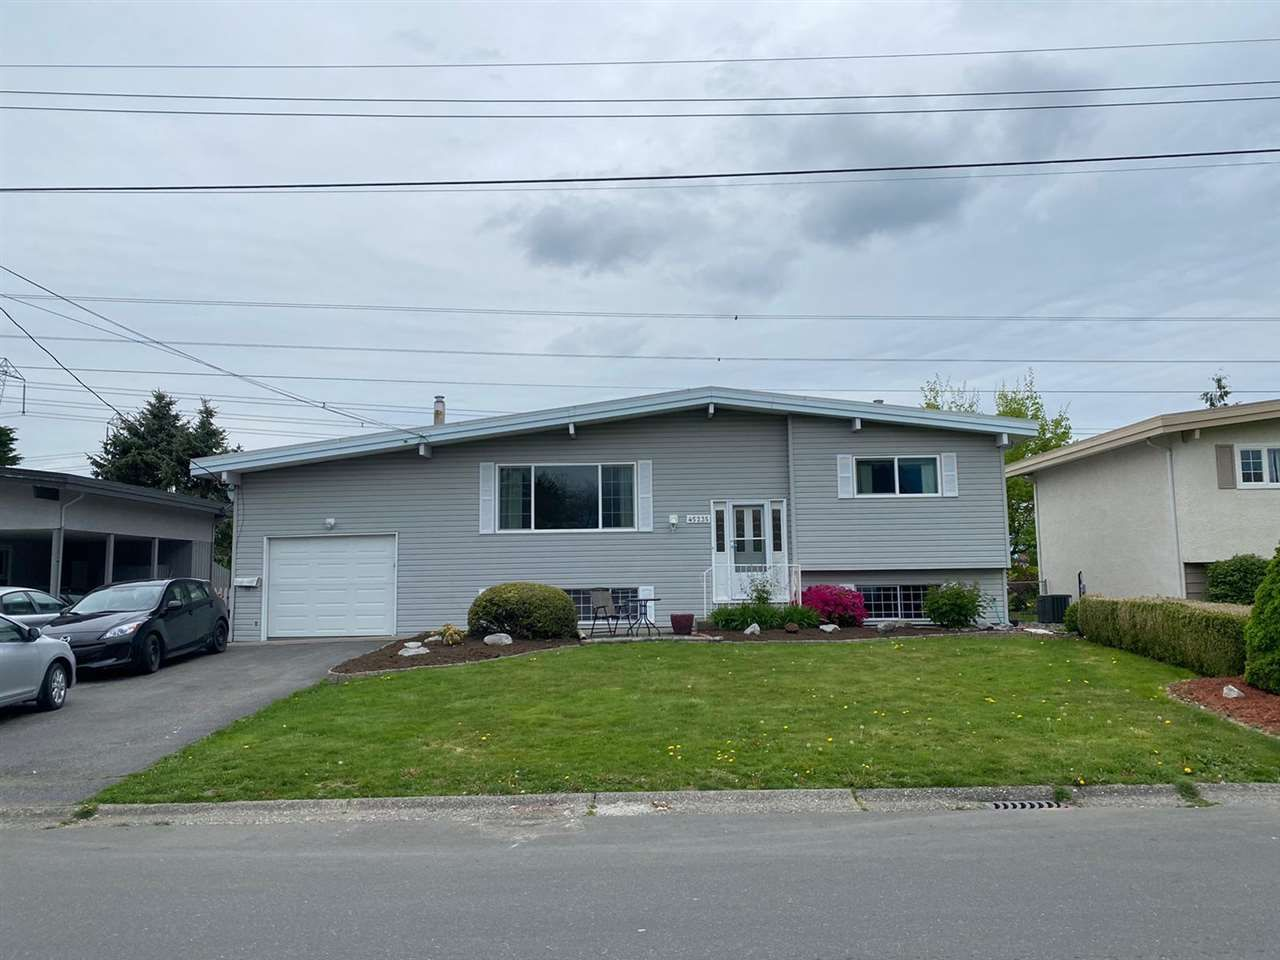 Main Photo: 45235 ROSEBERRY Road in Chilliwack: Sardis West Vedder Rd House for sale (Sardis)  : MLS®# R2592446